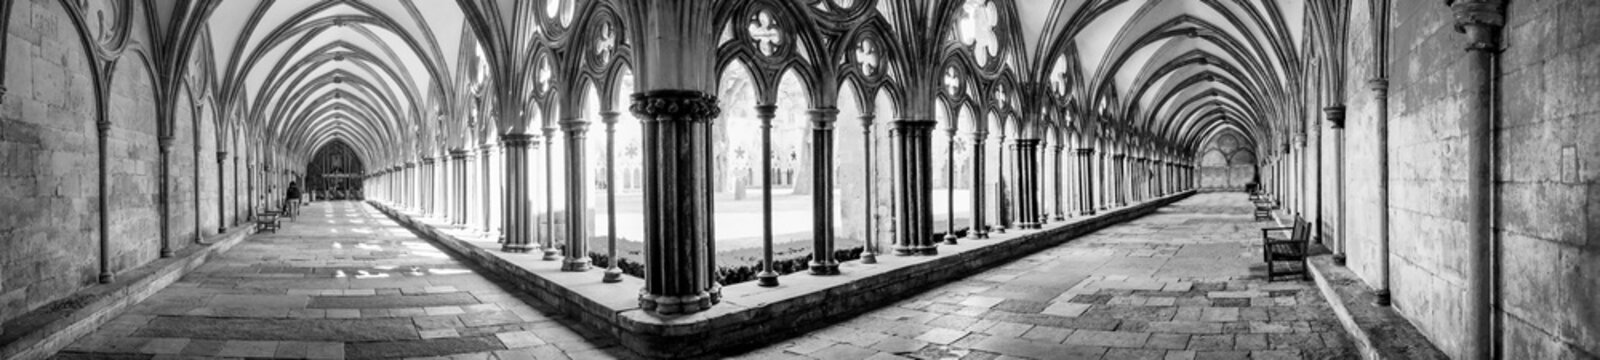 Salisbury cathederal cloisters, panoramic of two cloister walk ways